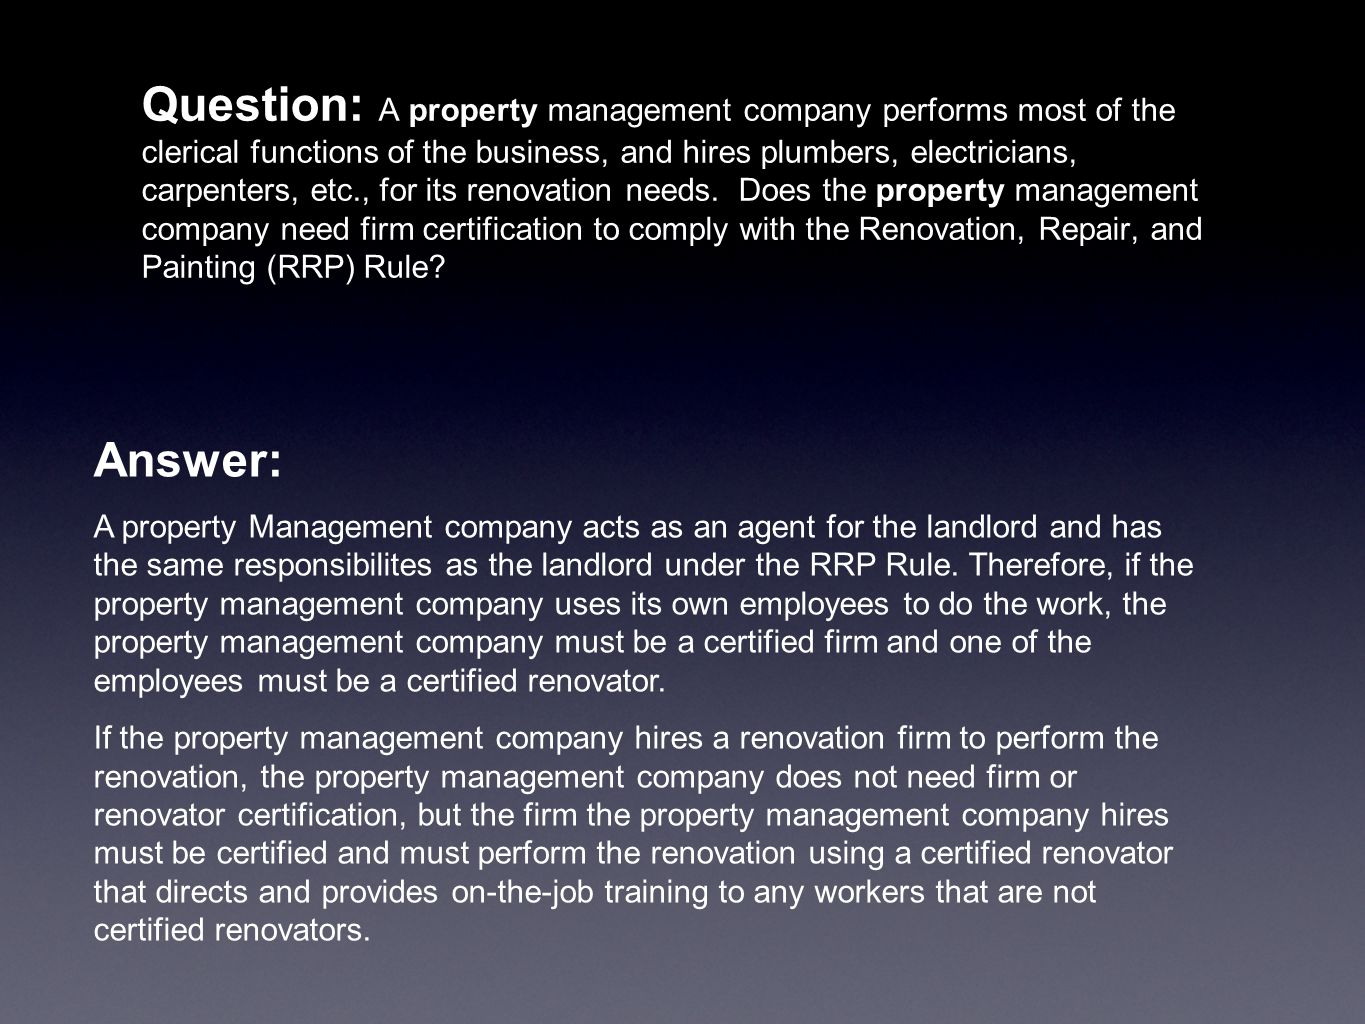 Question: A property management company performs most of the clerical functions of the business, and hires plumbers, electricians, carpenters, etc., f